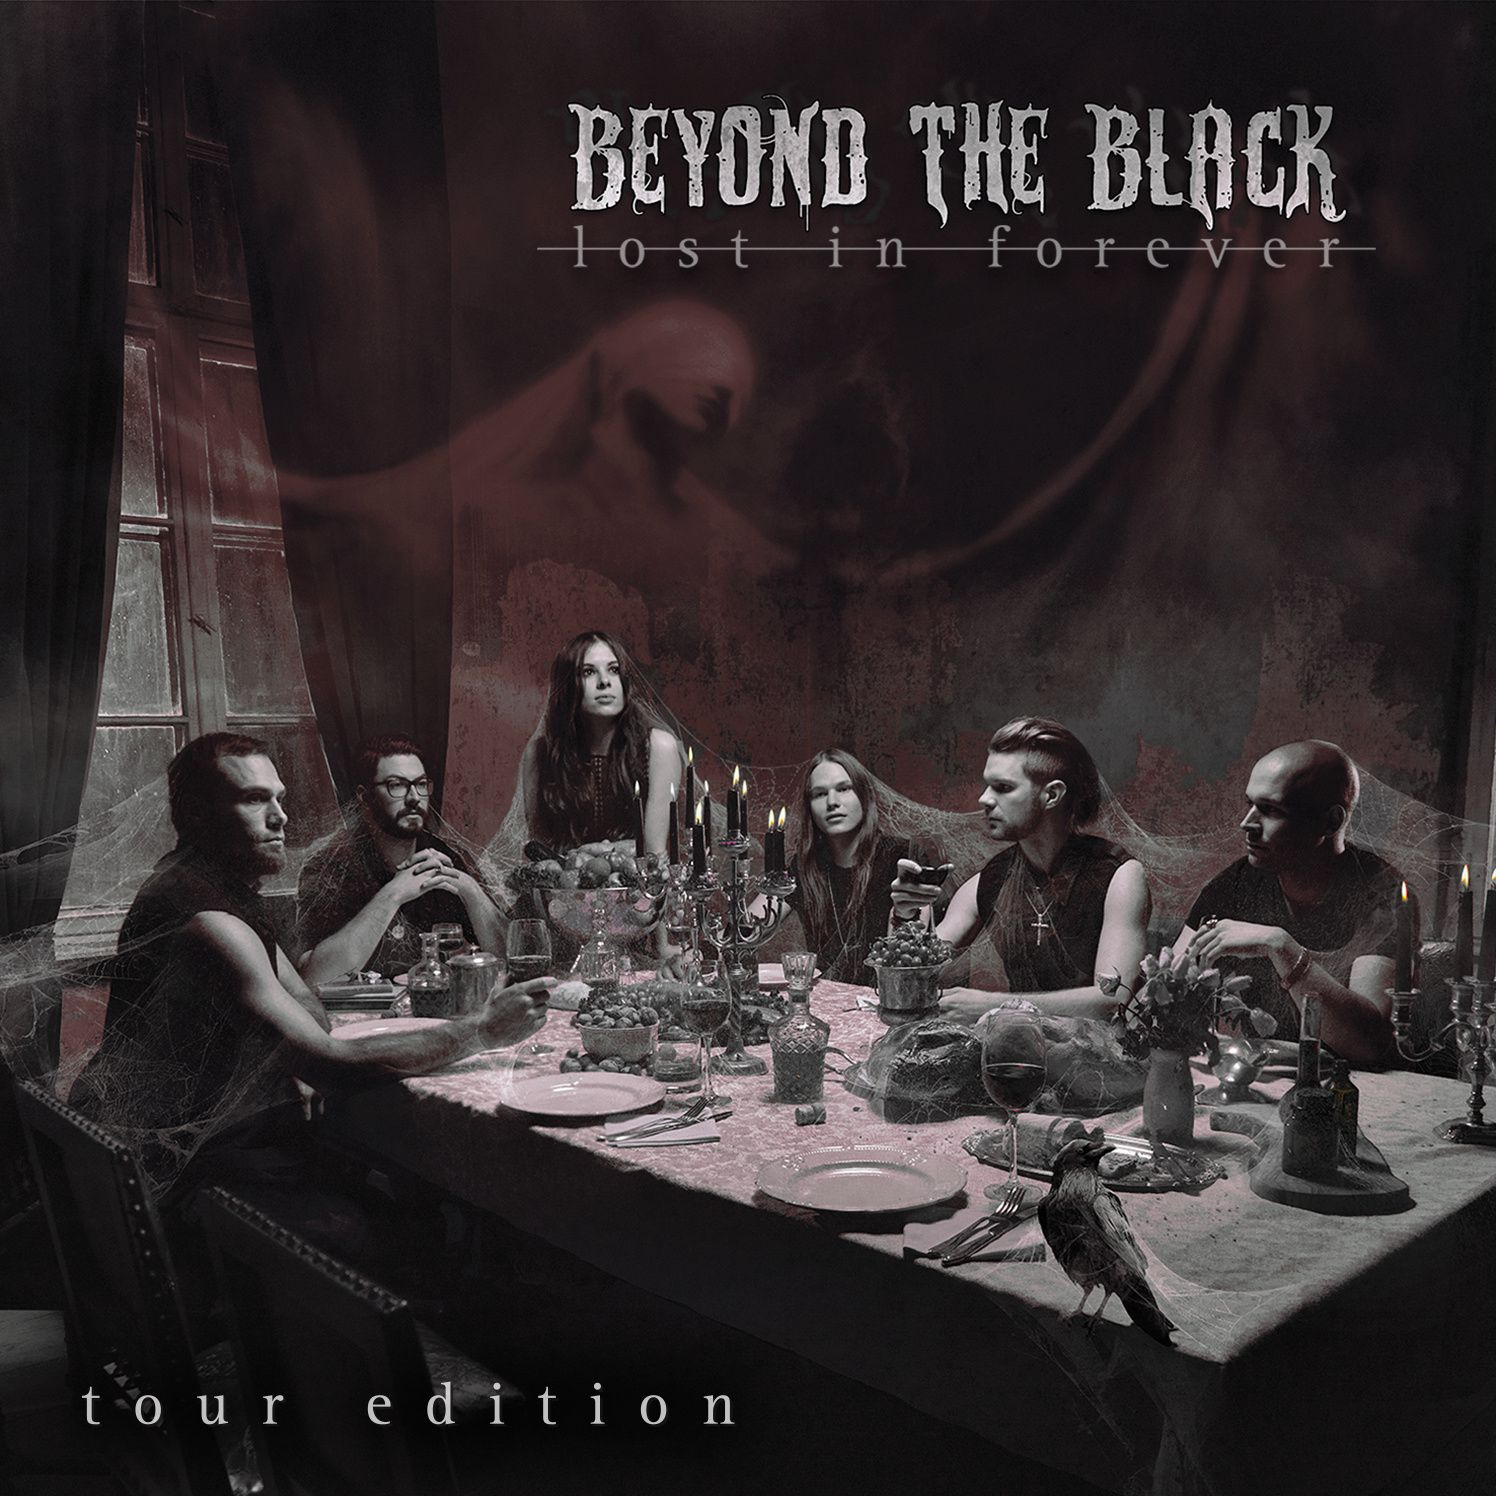 """CD review BEYOND THE BLACK """"Lost in Forever"""" - Tour Edition"""